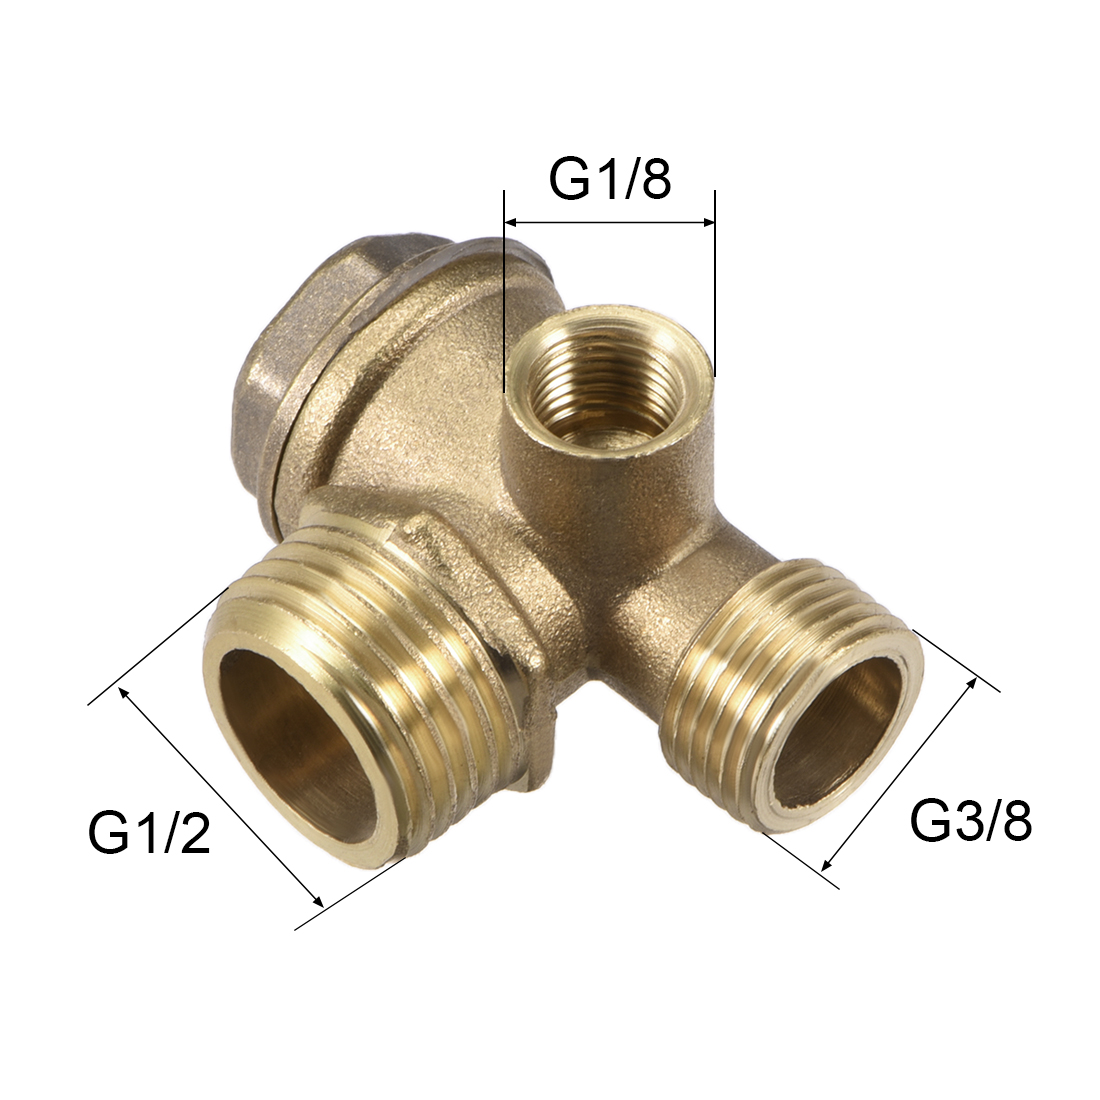 "Air Compressor Check Valve Right Female Threaded Brass 1/8"" x 3/8"" x 1/2"" 3Pcs - image 1 of 3"